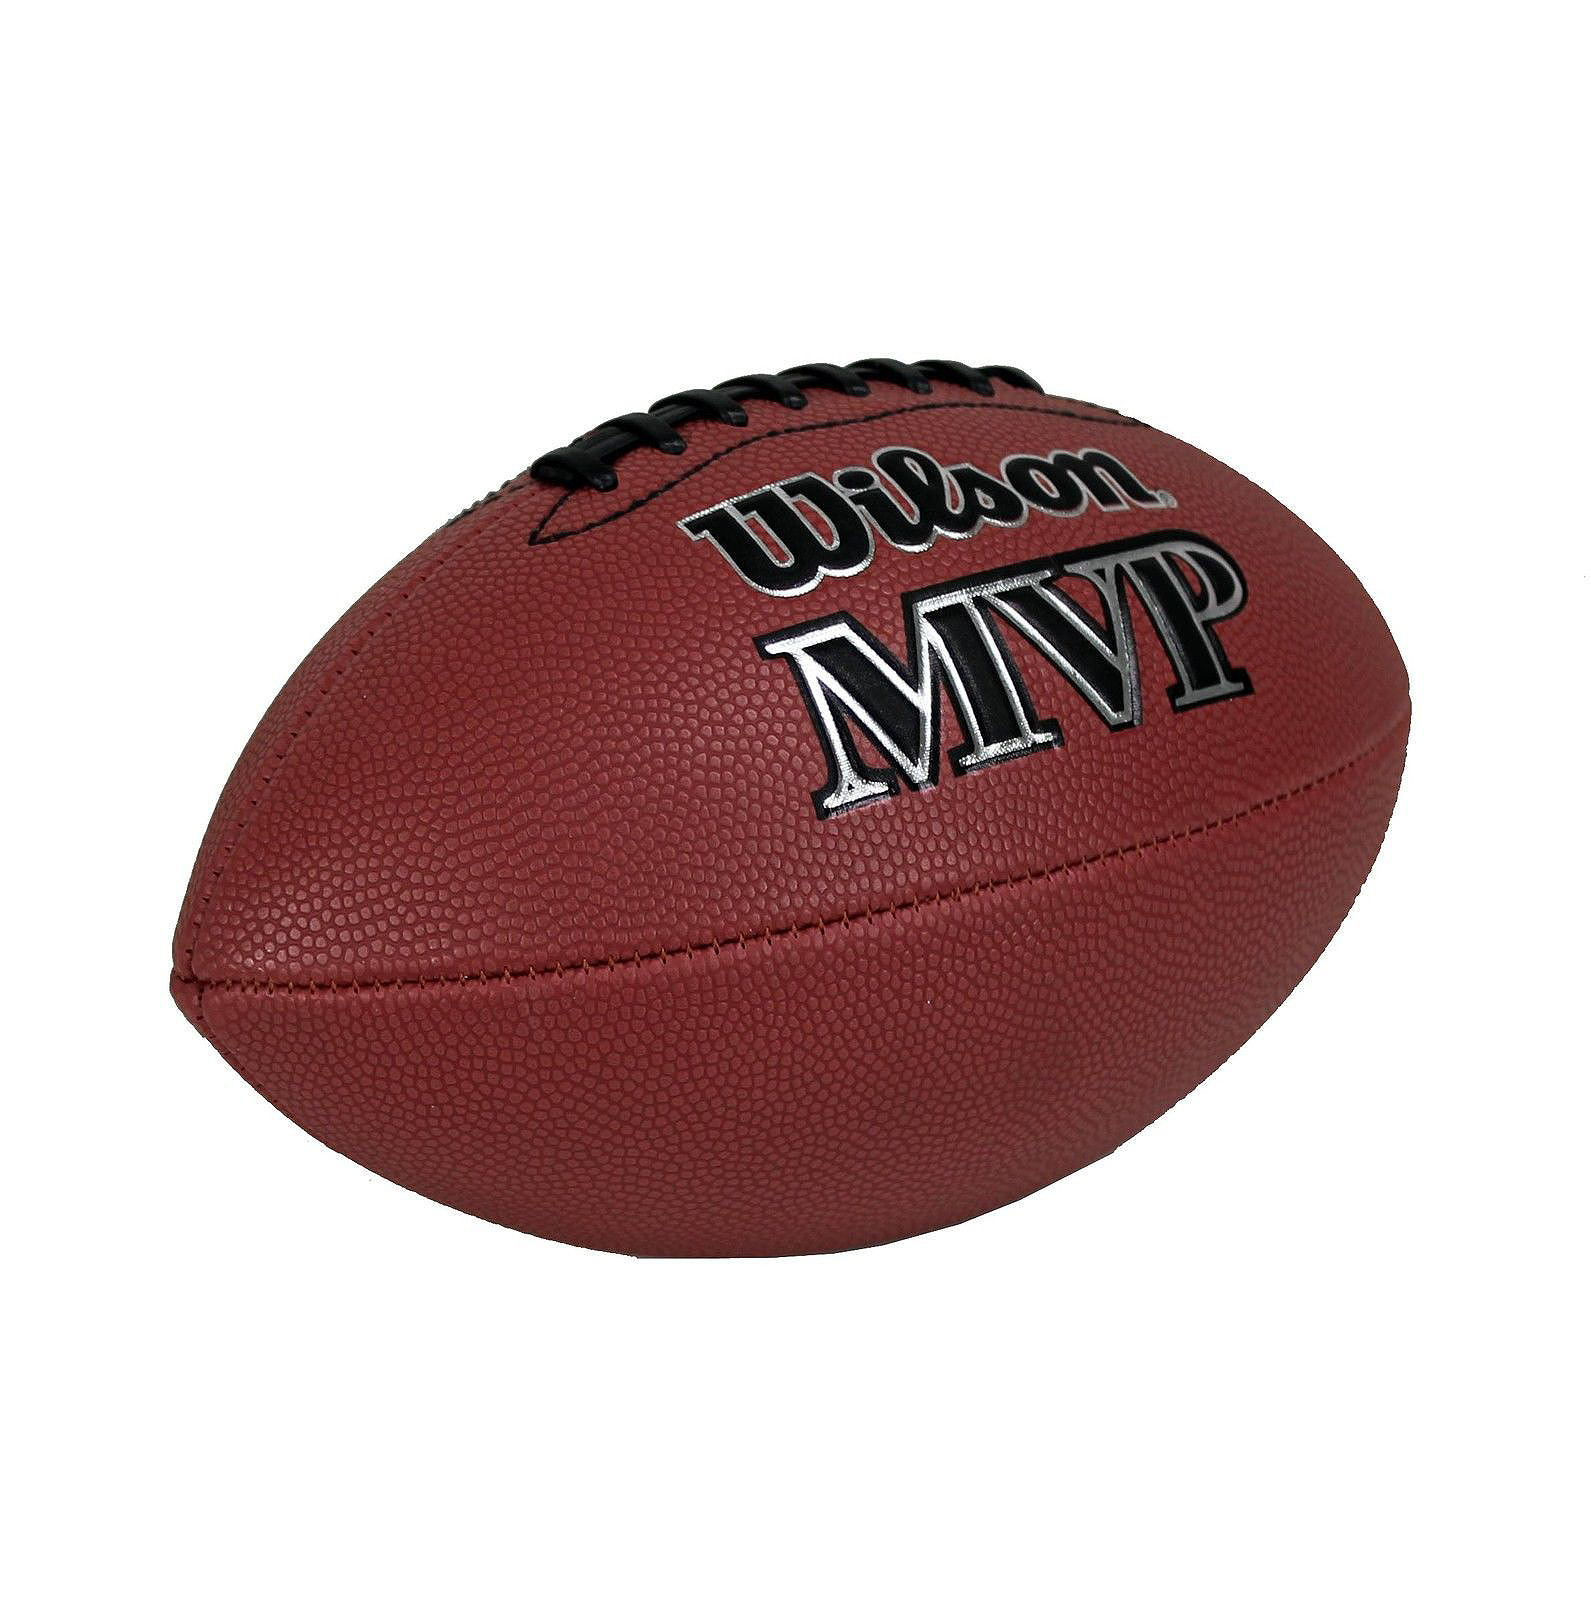 Wilson MVP Official Football Ball  MLB NFL NHL Merchandise NFL American Football Merchandise